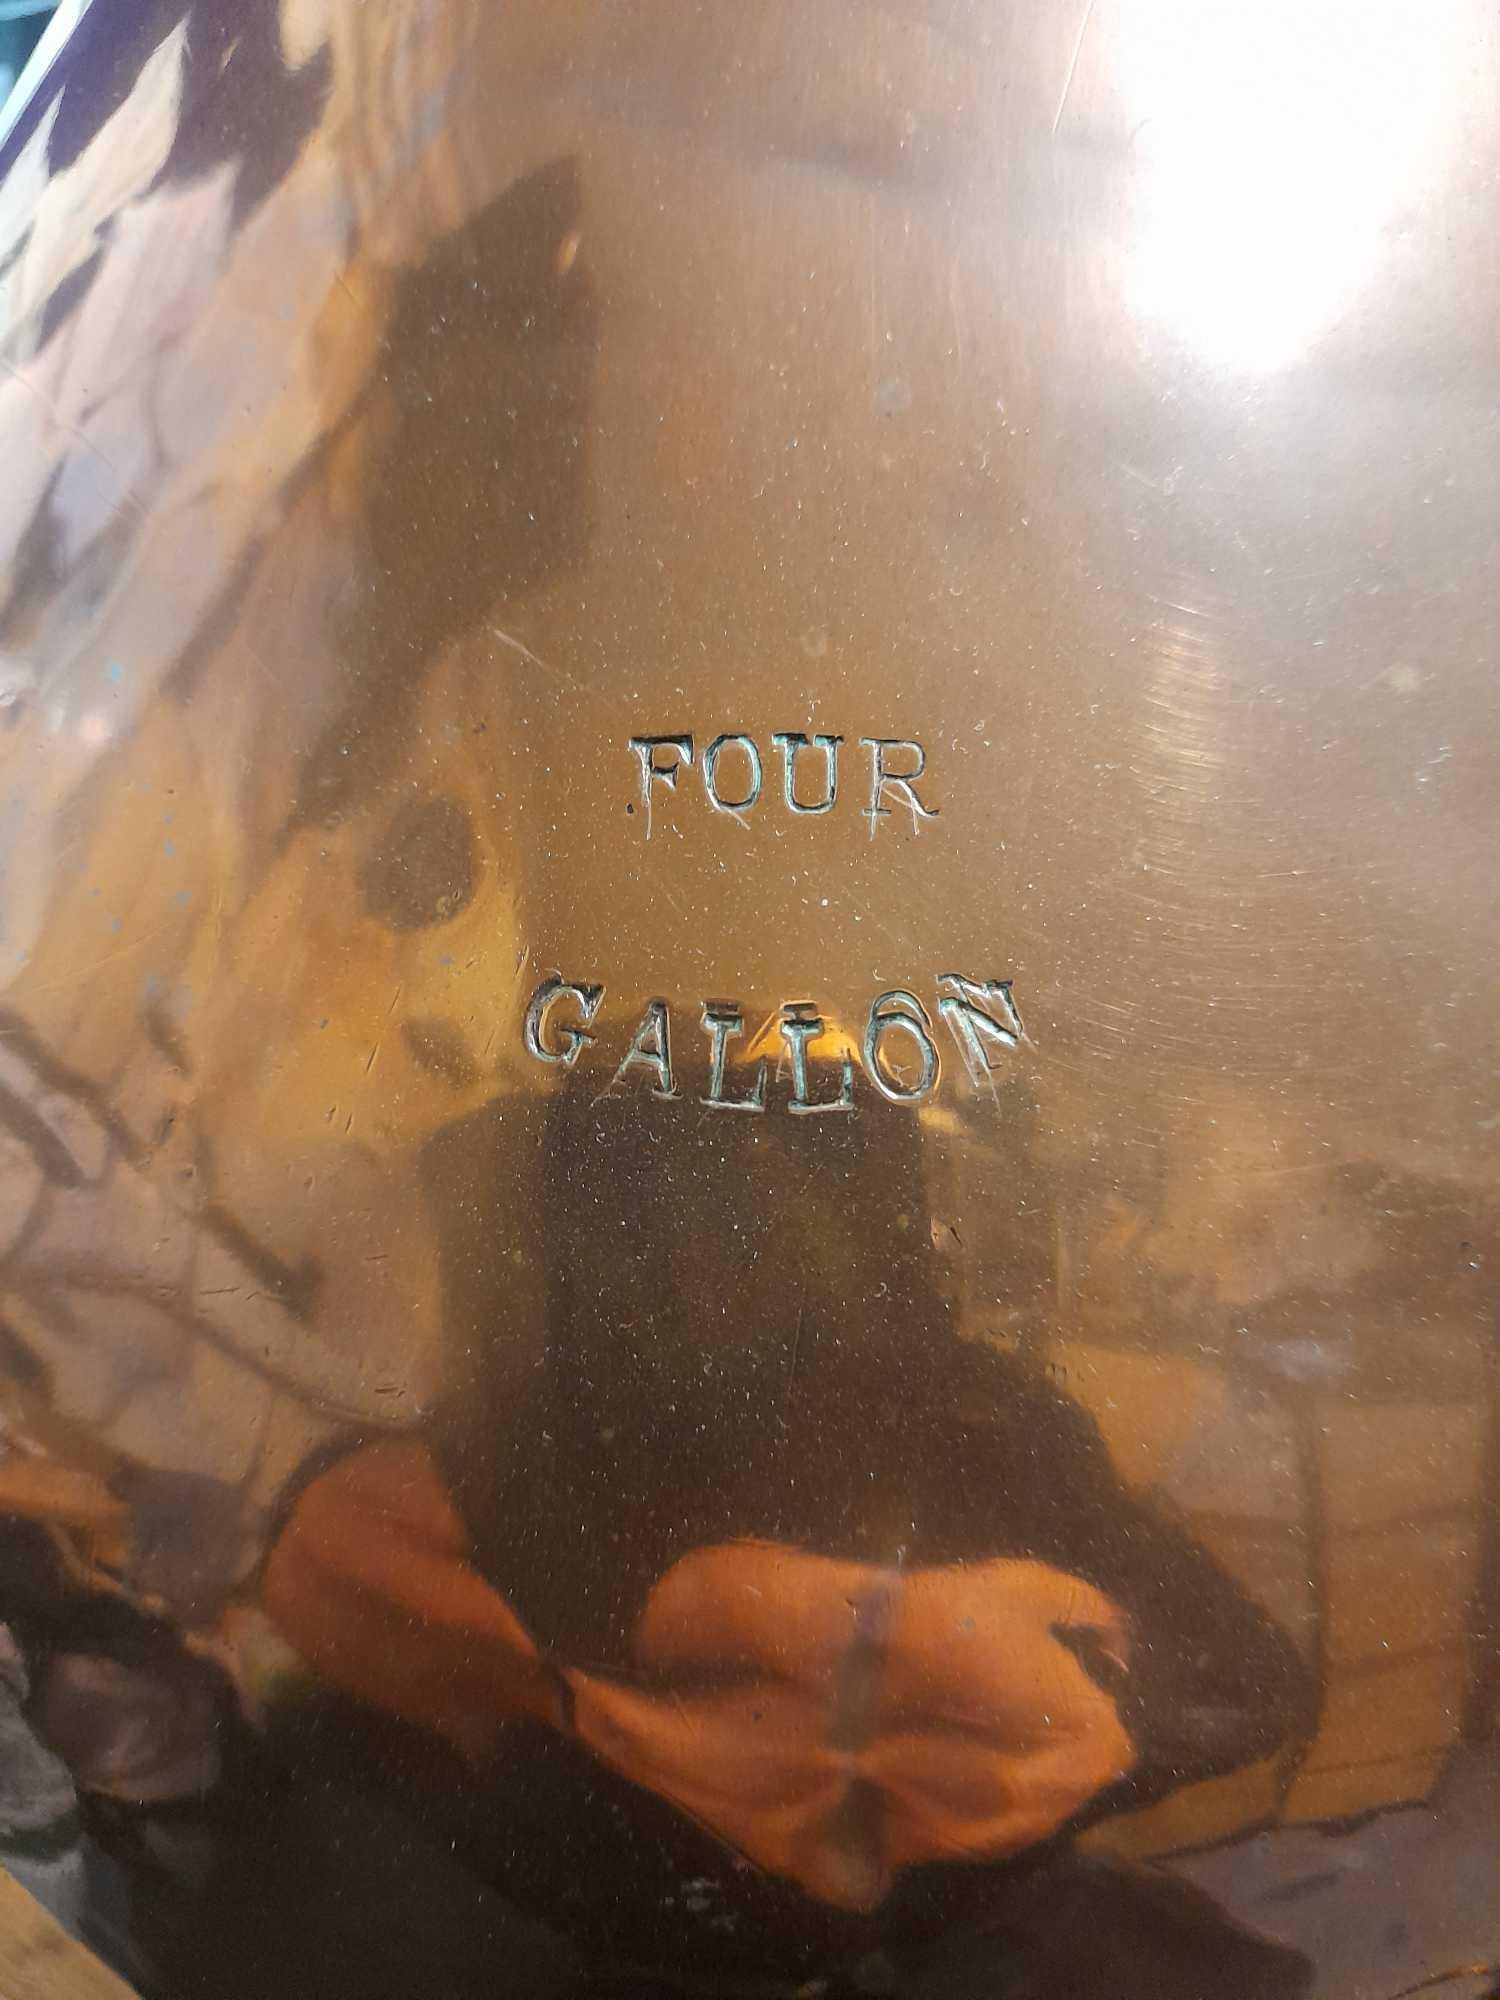 4 GALLON COPPER WHISKY MEASURING JUG - Image 2 of 8